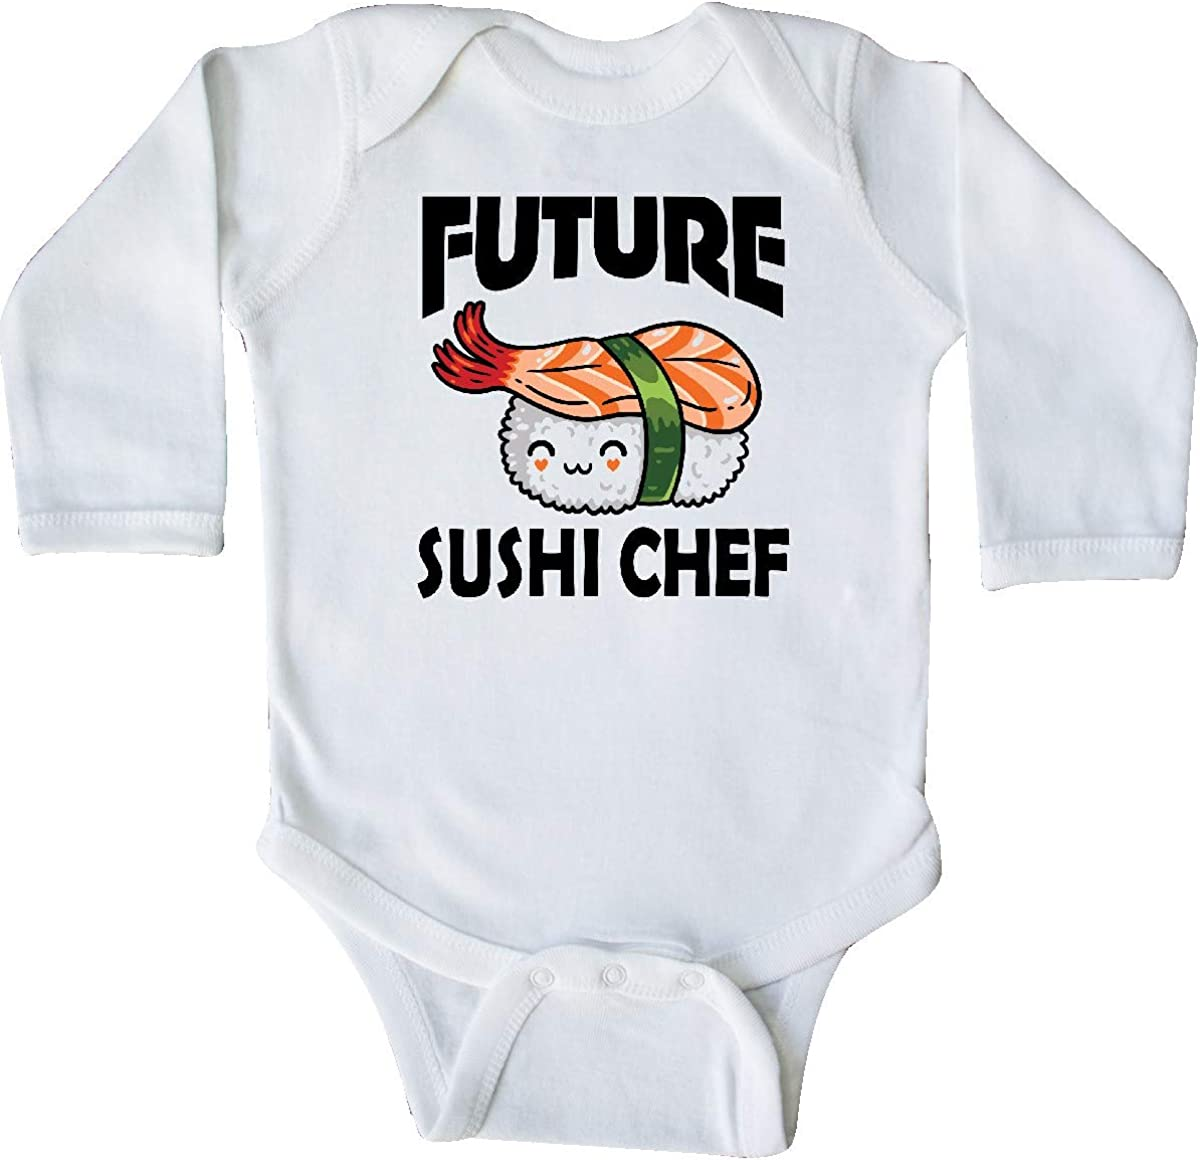 inktastic Future Sushi Chef Baby Clothes Long Sleeve Creeper